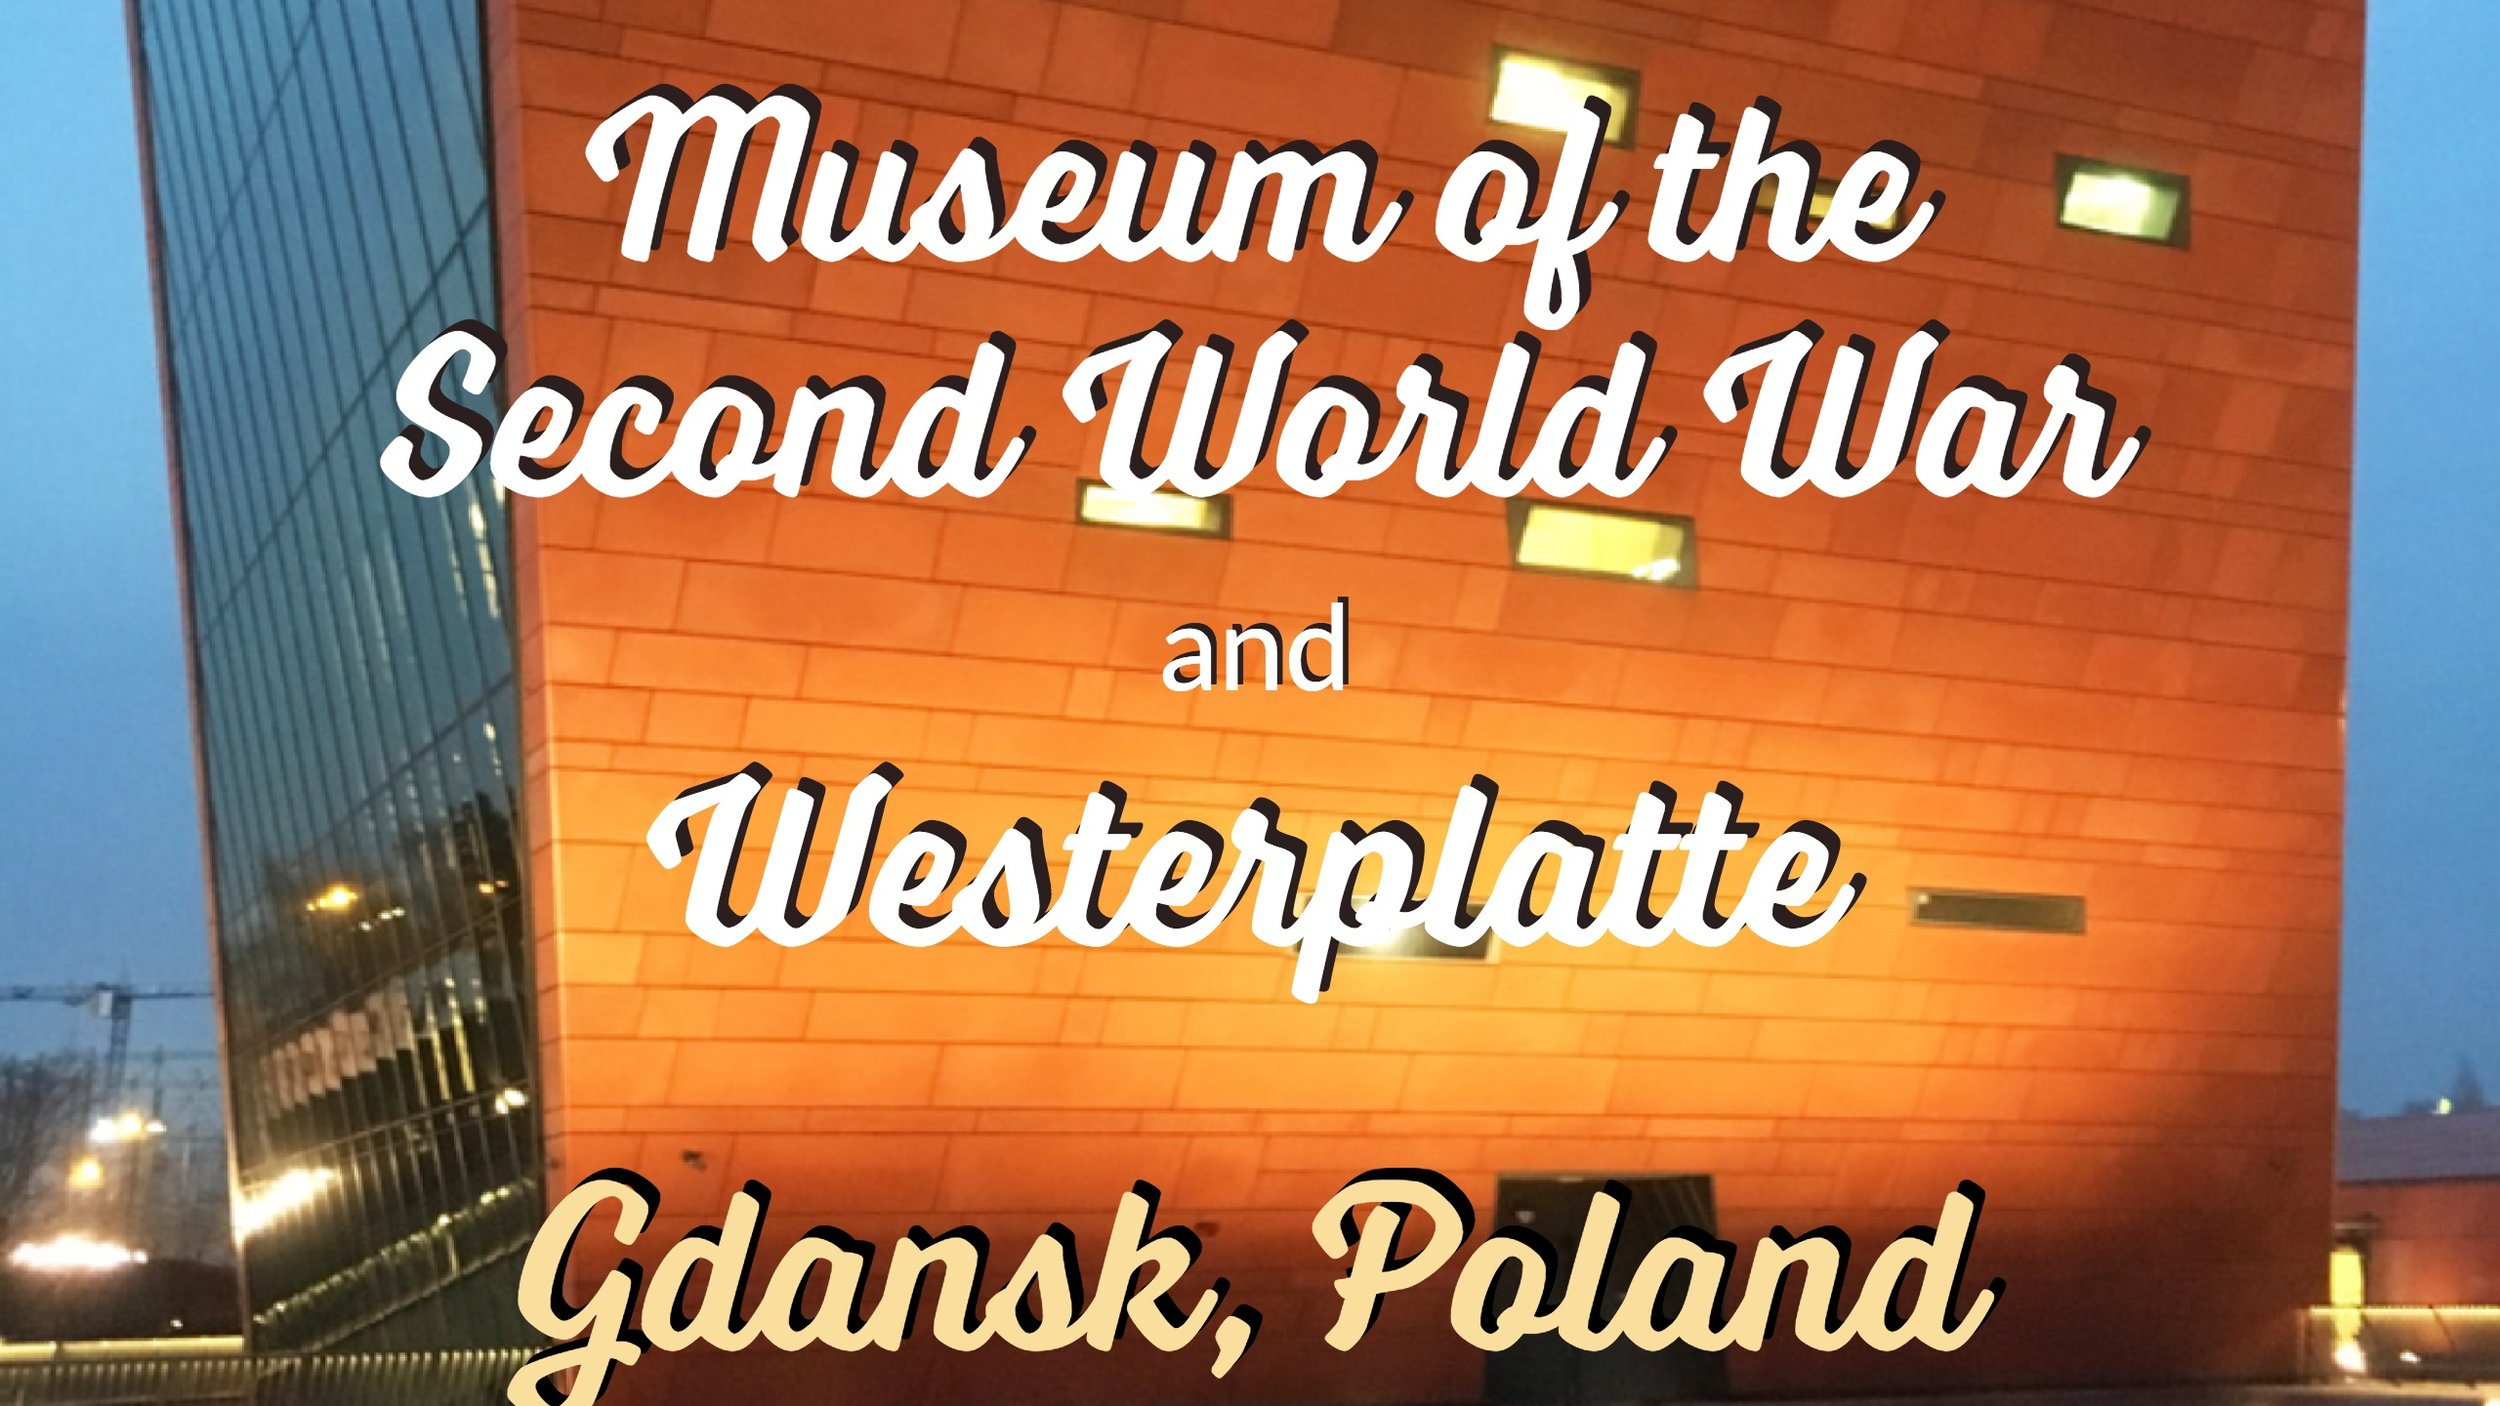 WWII Museum of the Second World War and Westerplatte - Gdansk, Poland